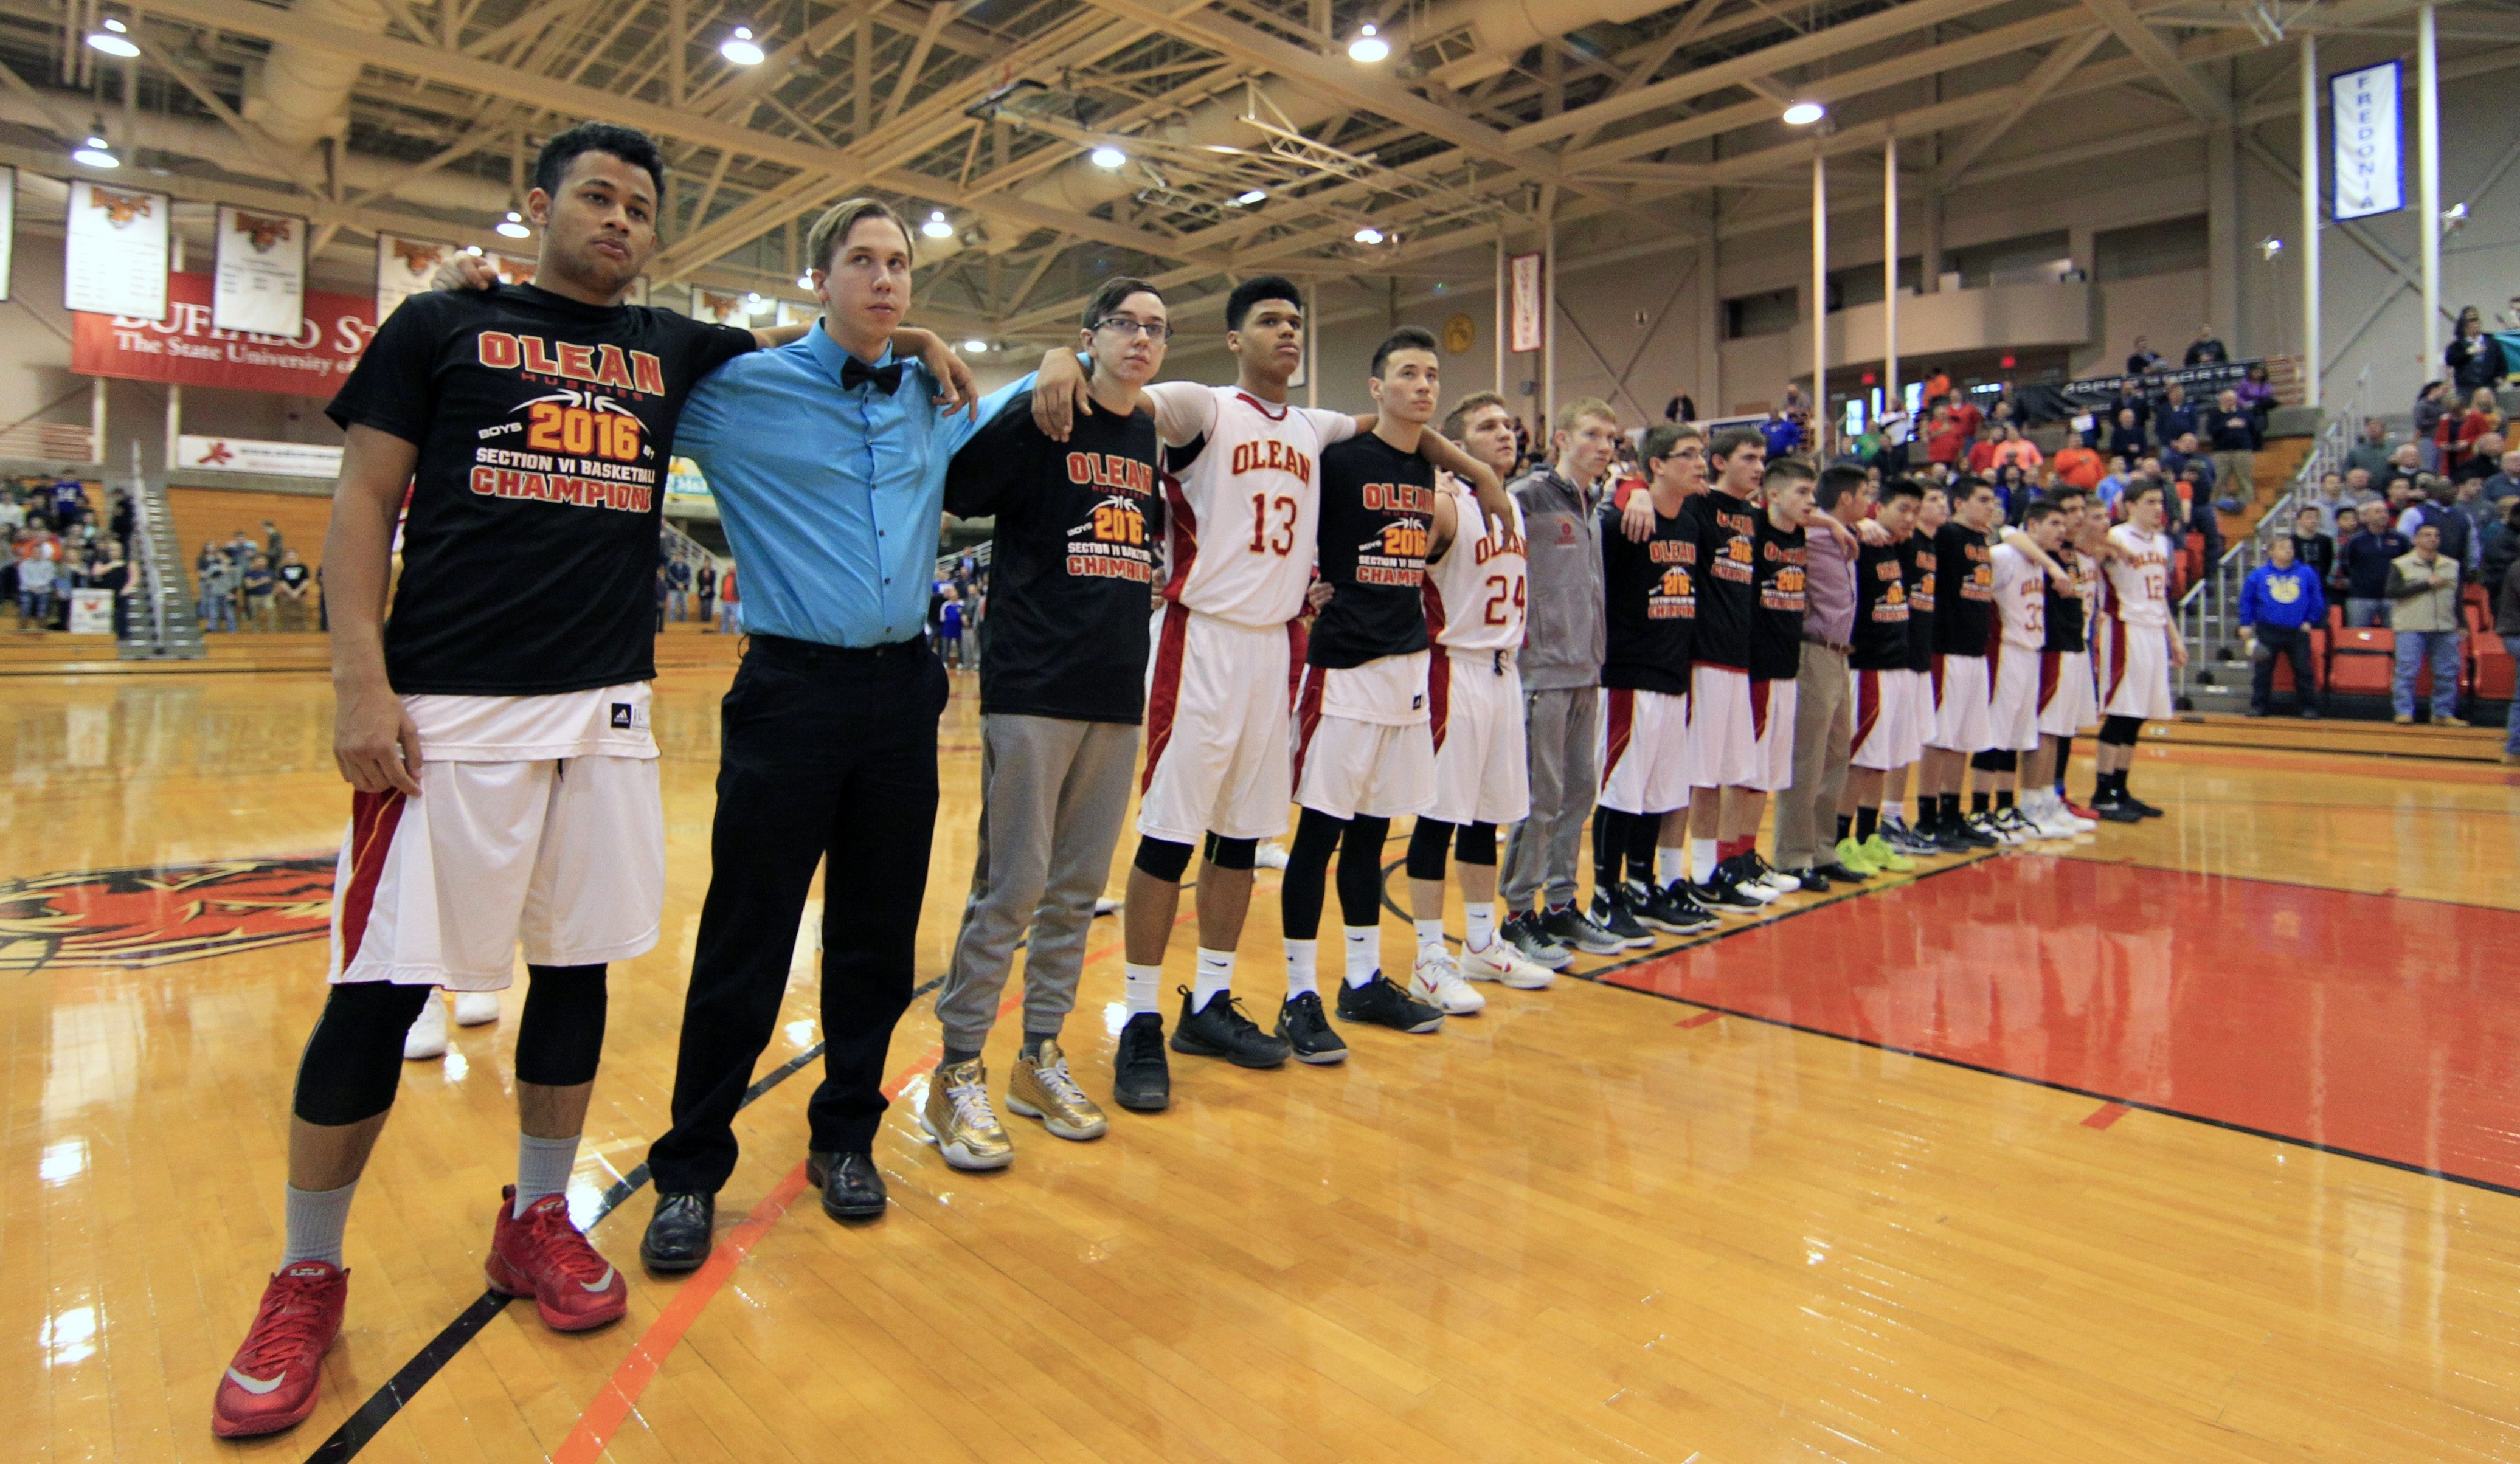 Olean and other area teams will be traveling to Binghamton instead of Glens Falls if they make the state final four in the immediate future.